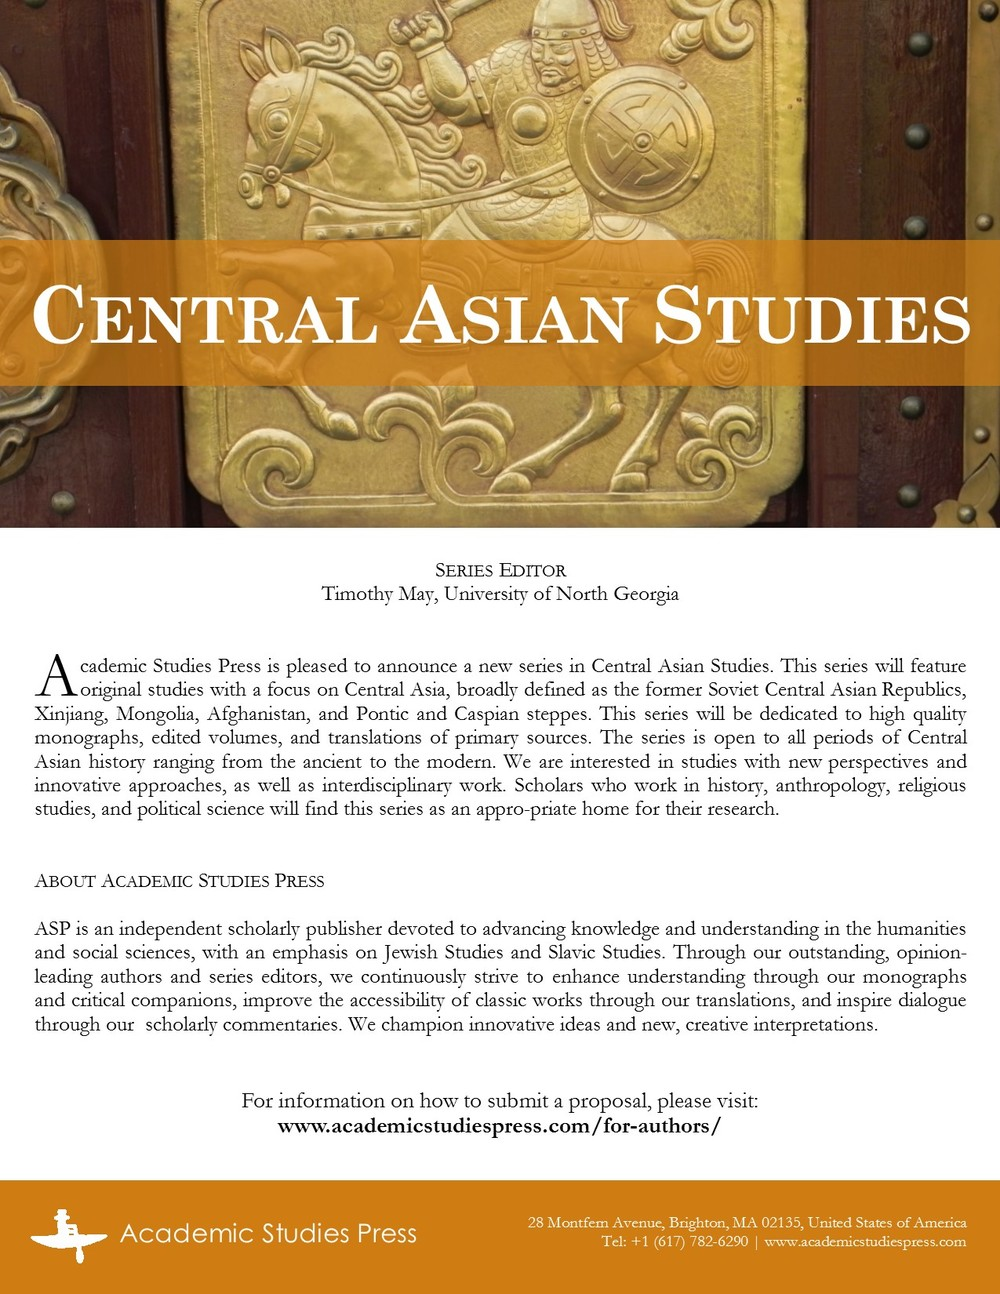 Central Asian Studies Flyer